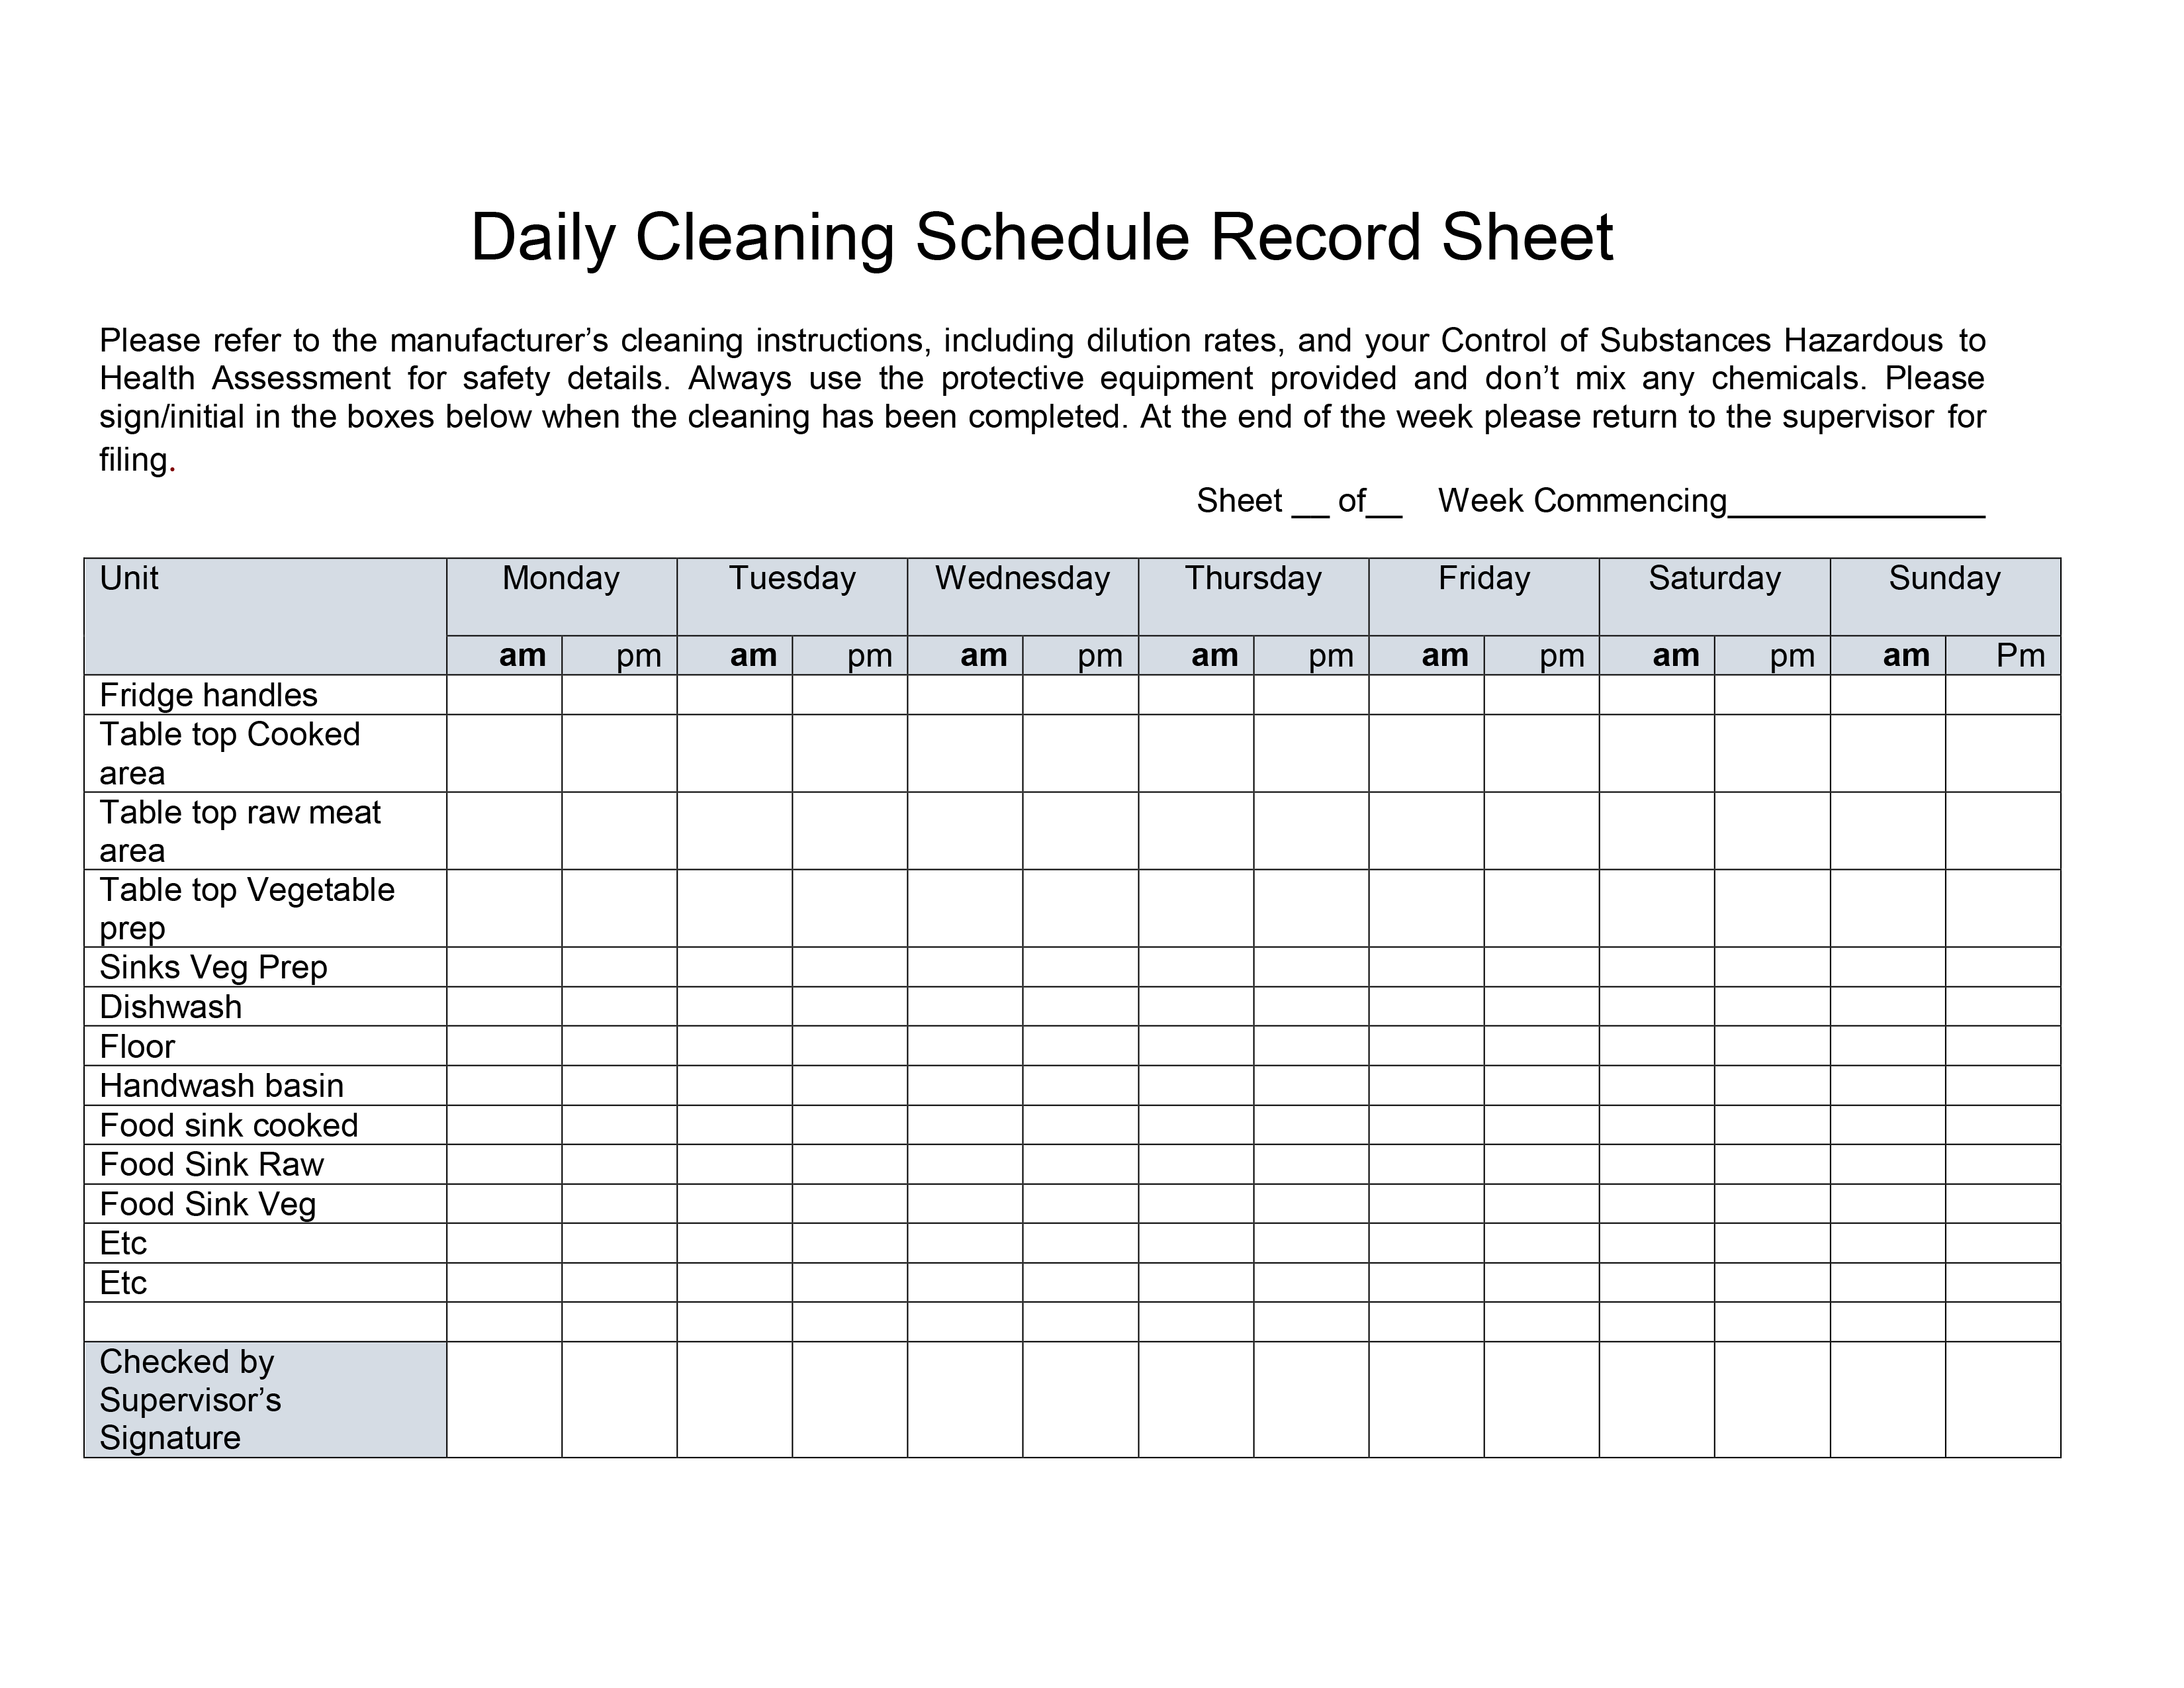 Kitchen Daily Cleaning Schedule Record Sheet. Please refer